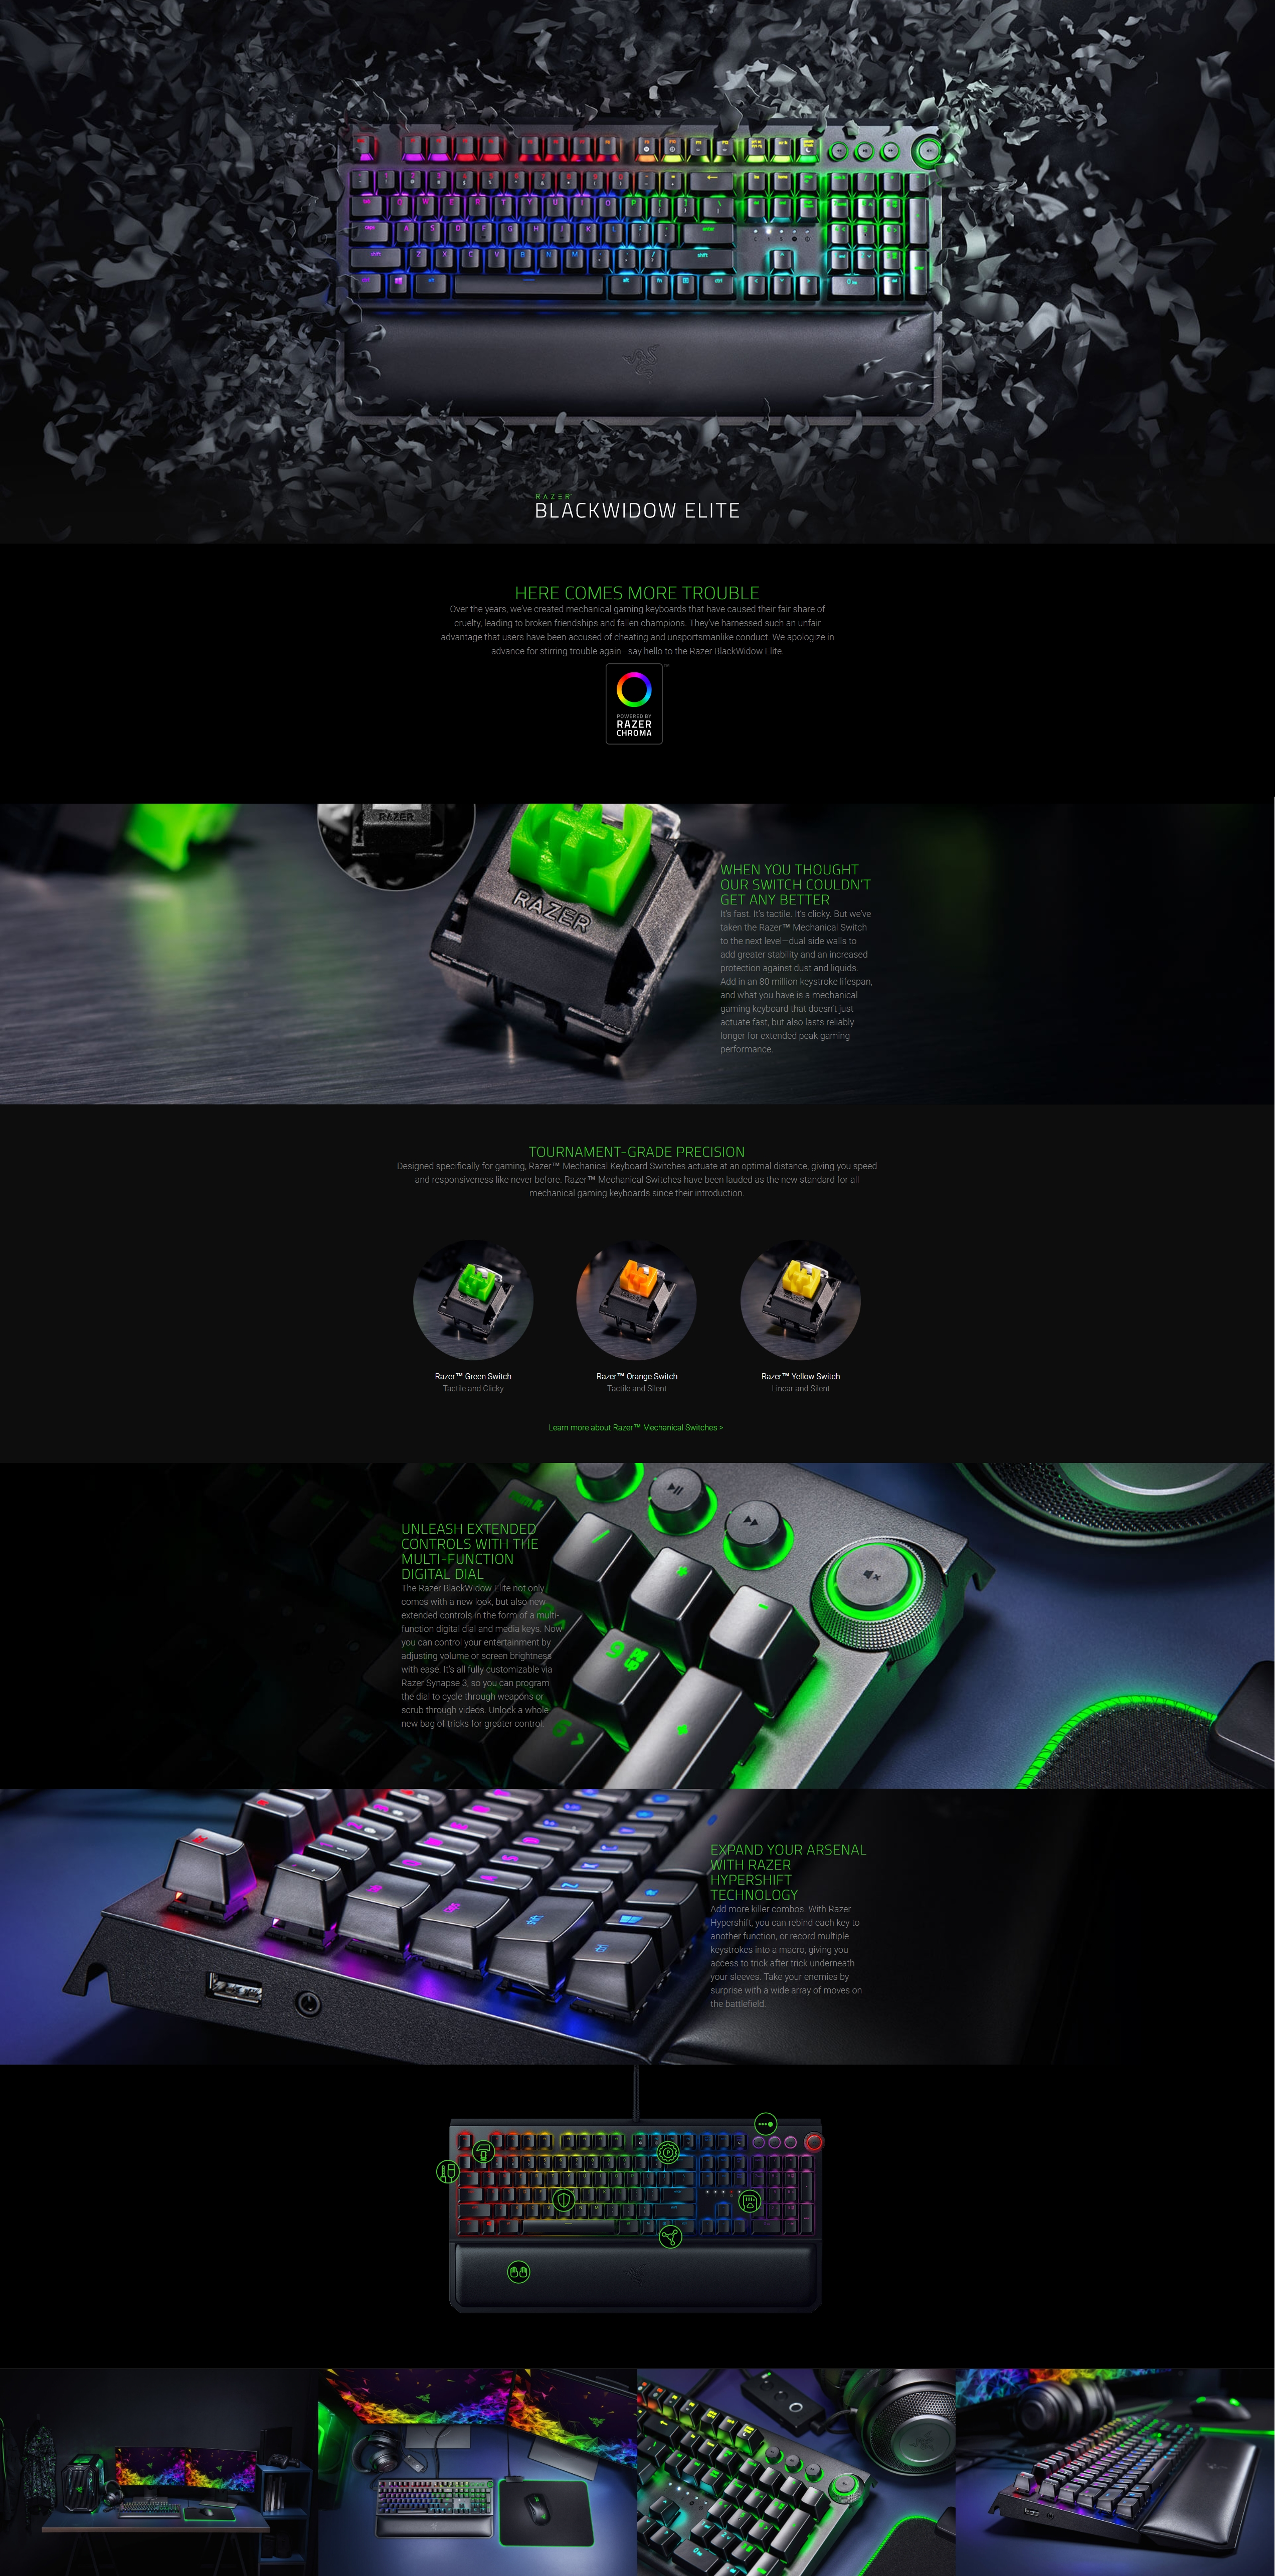 A large marketing image providing additional information about the product Razer Blackwidow Elite Mechanical Gaming Keyboard (Yellow Switch) - Additional alt info not provided